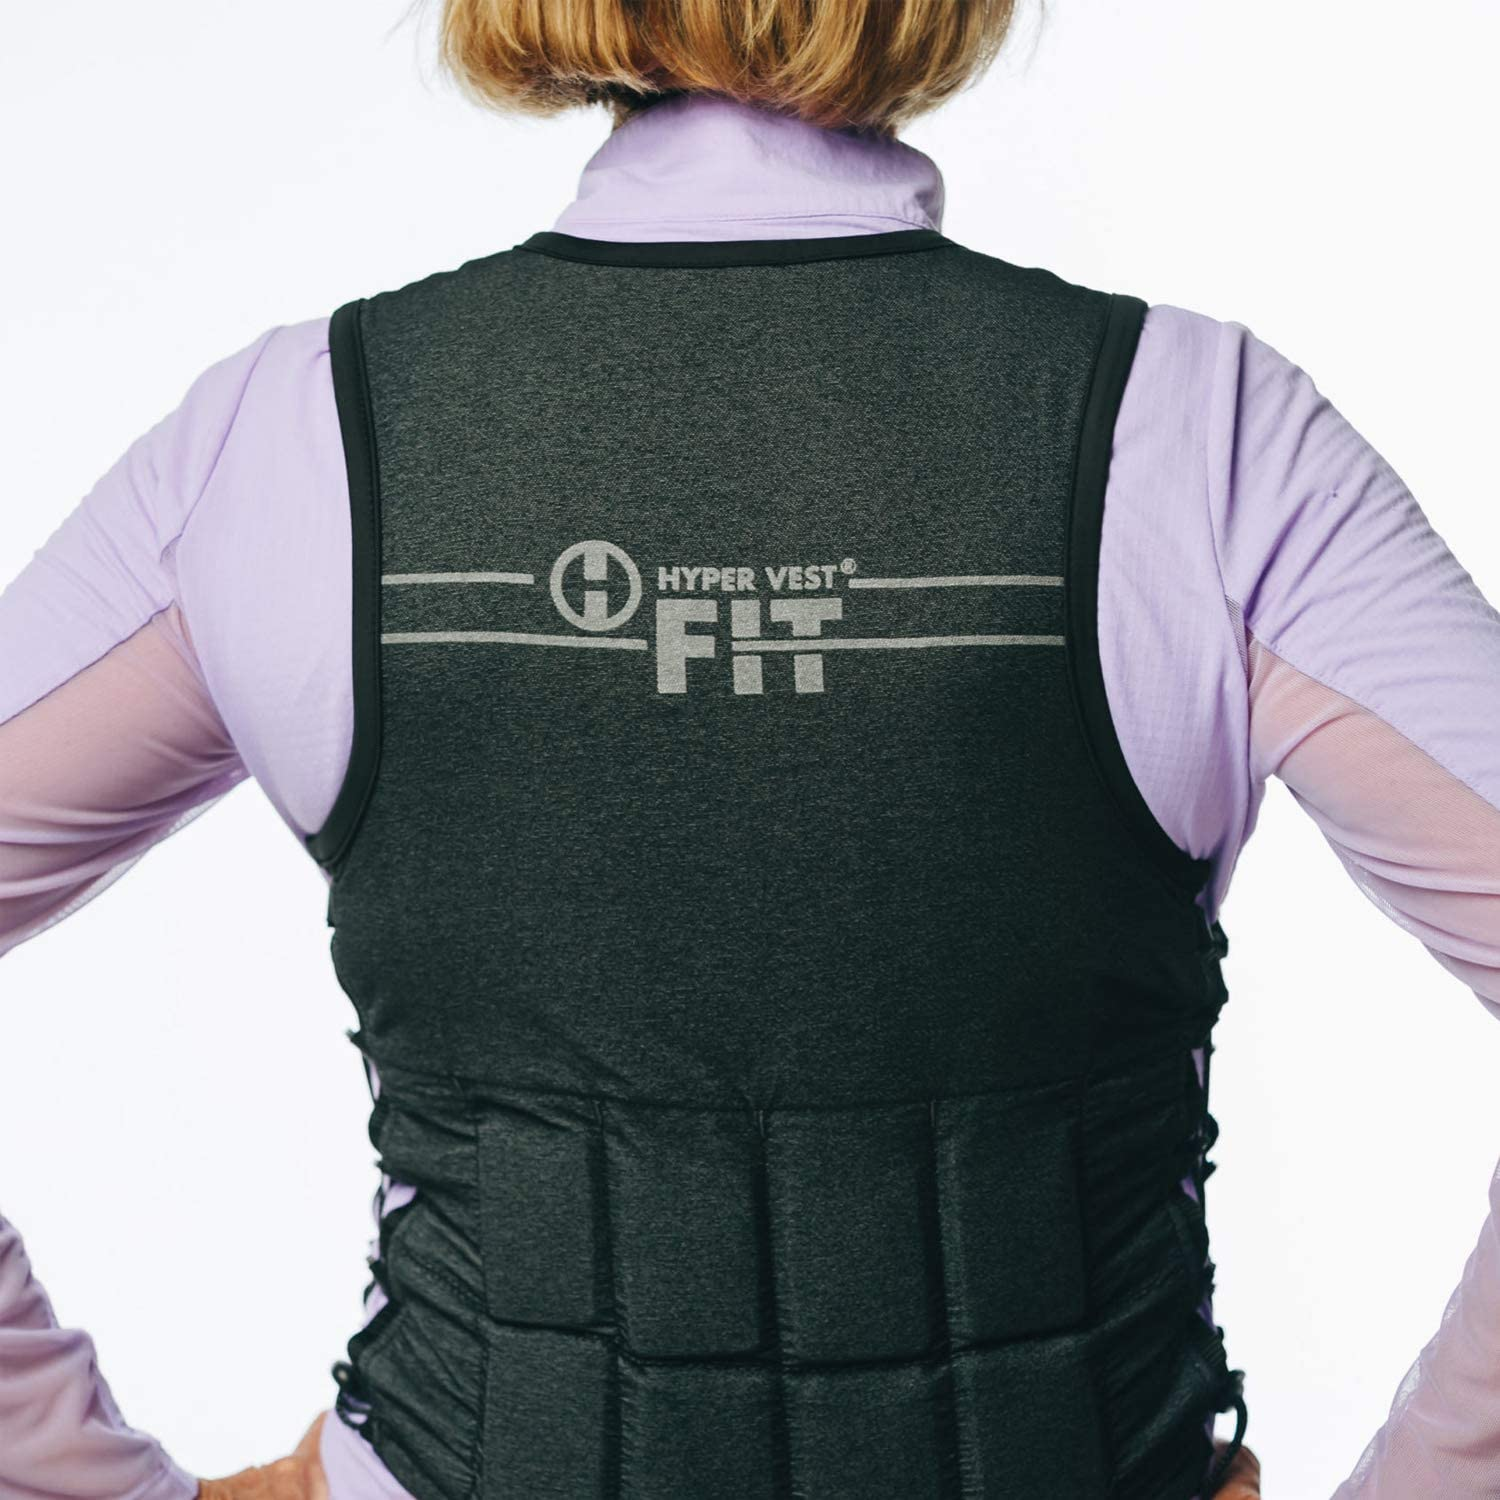 Hyperwear Hyper Vest FIT Adjustable Weighted Vest Women 5 lb or 8 lbs Running Walking Workouts Metallic Black Reflective Thin 1//2 lb Weights Designed Comfortable Female Fit